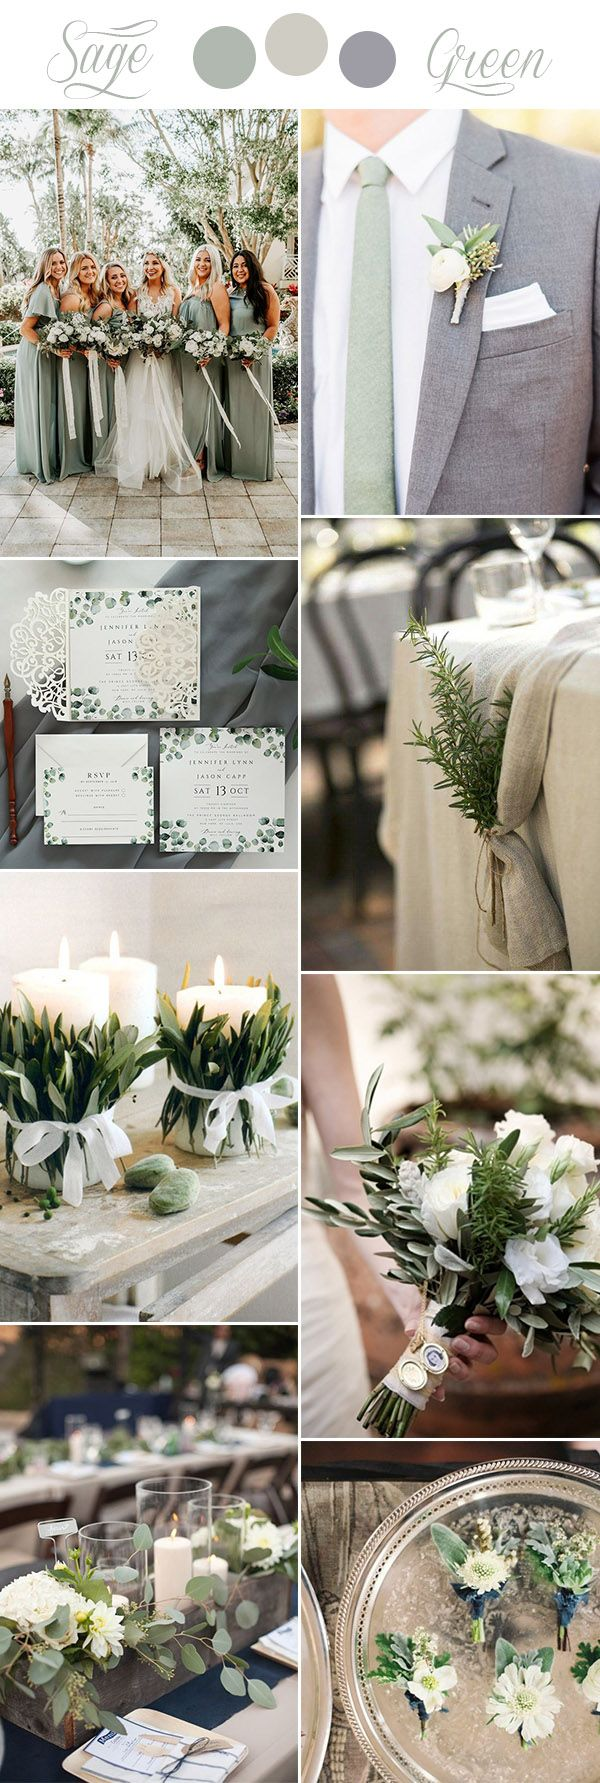 sage green, beige and grey rustic chic wedding colors #weddingcolors explore Pinterest